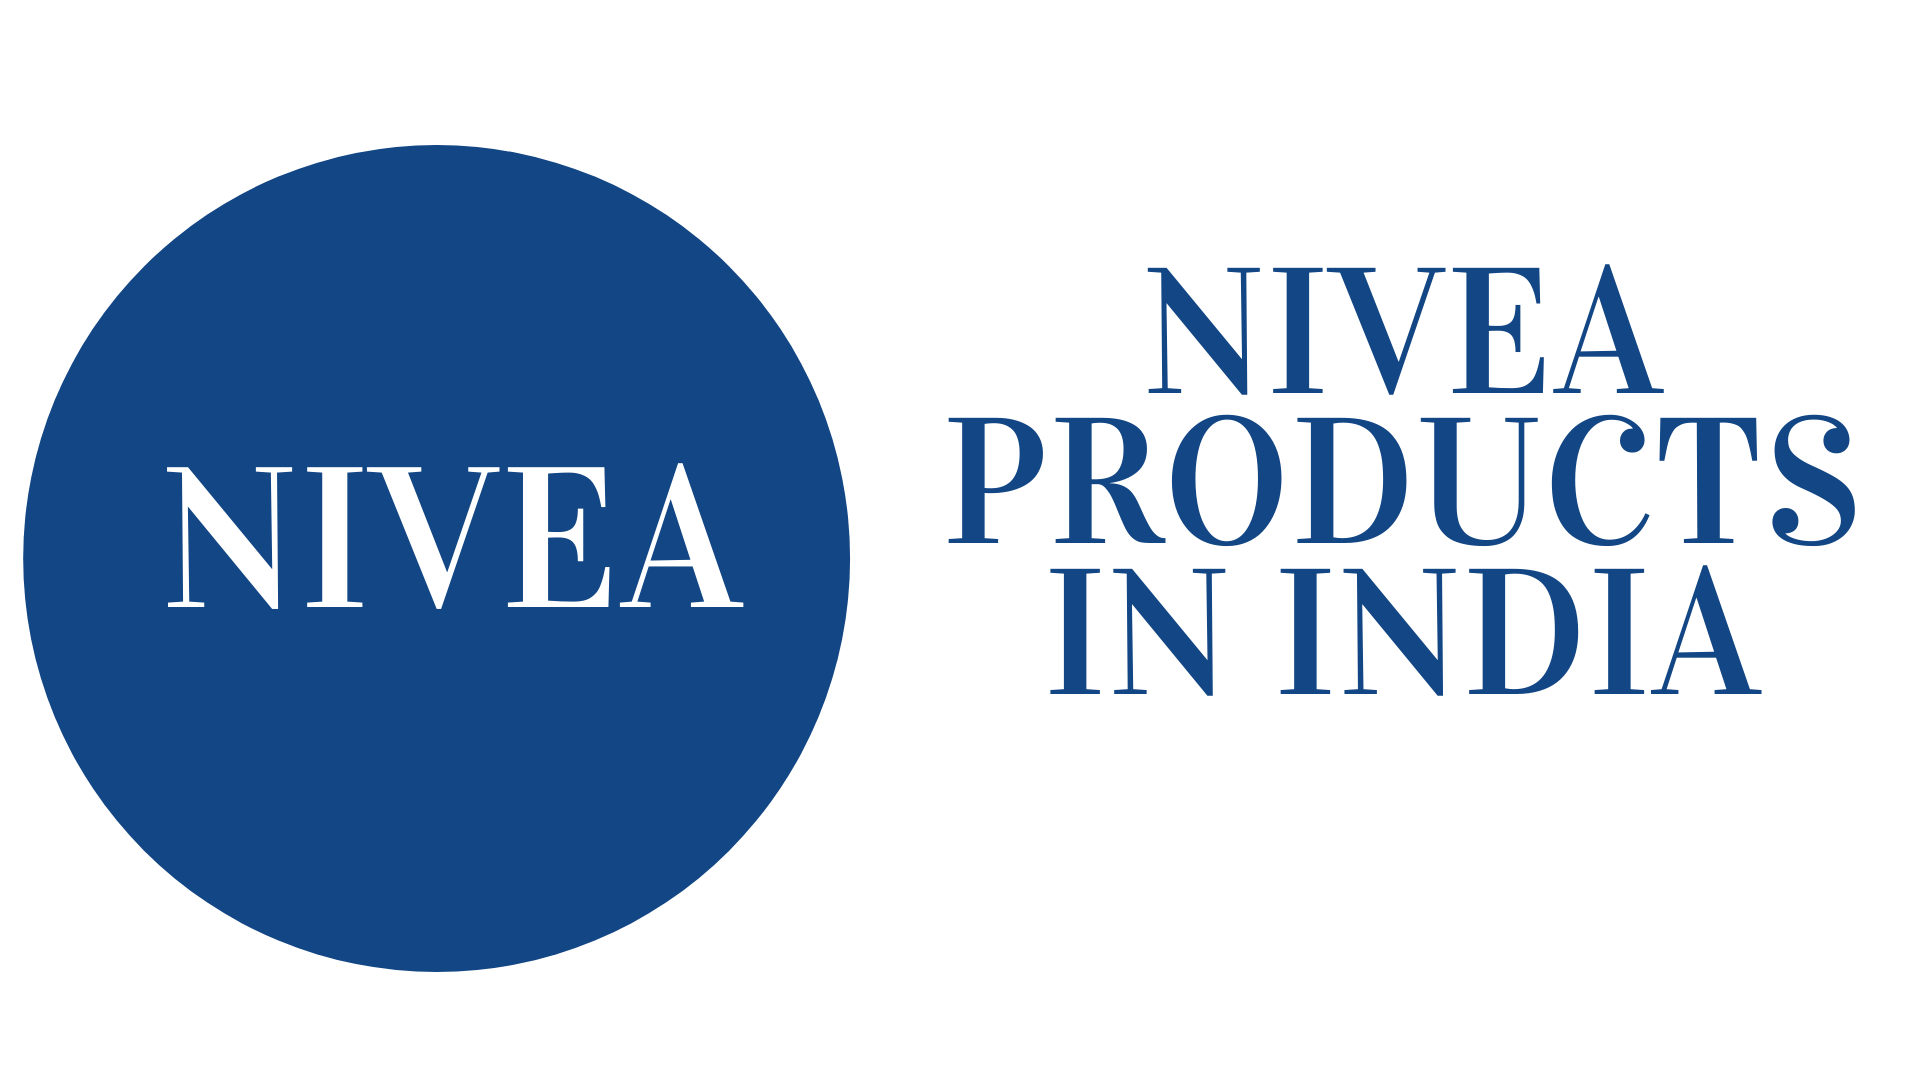 bestseller nivea products in india